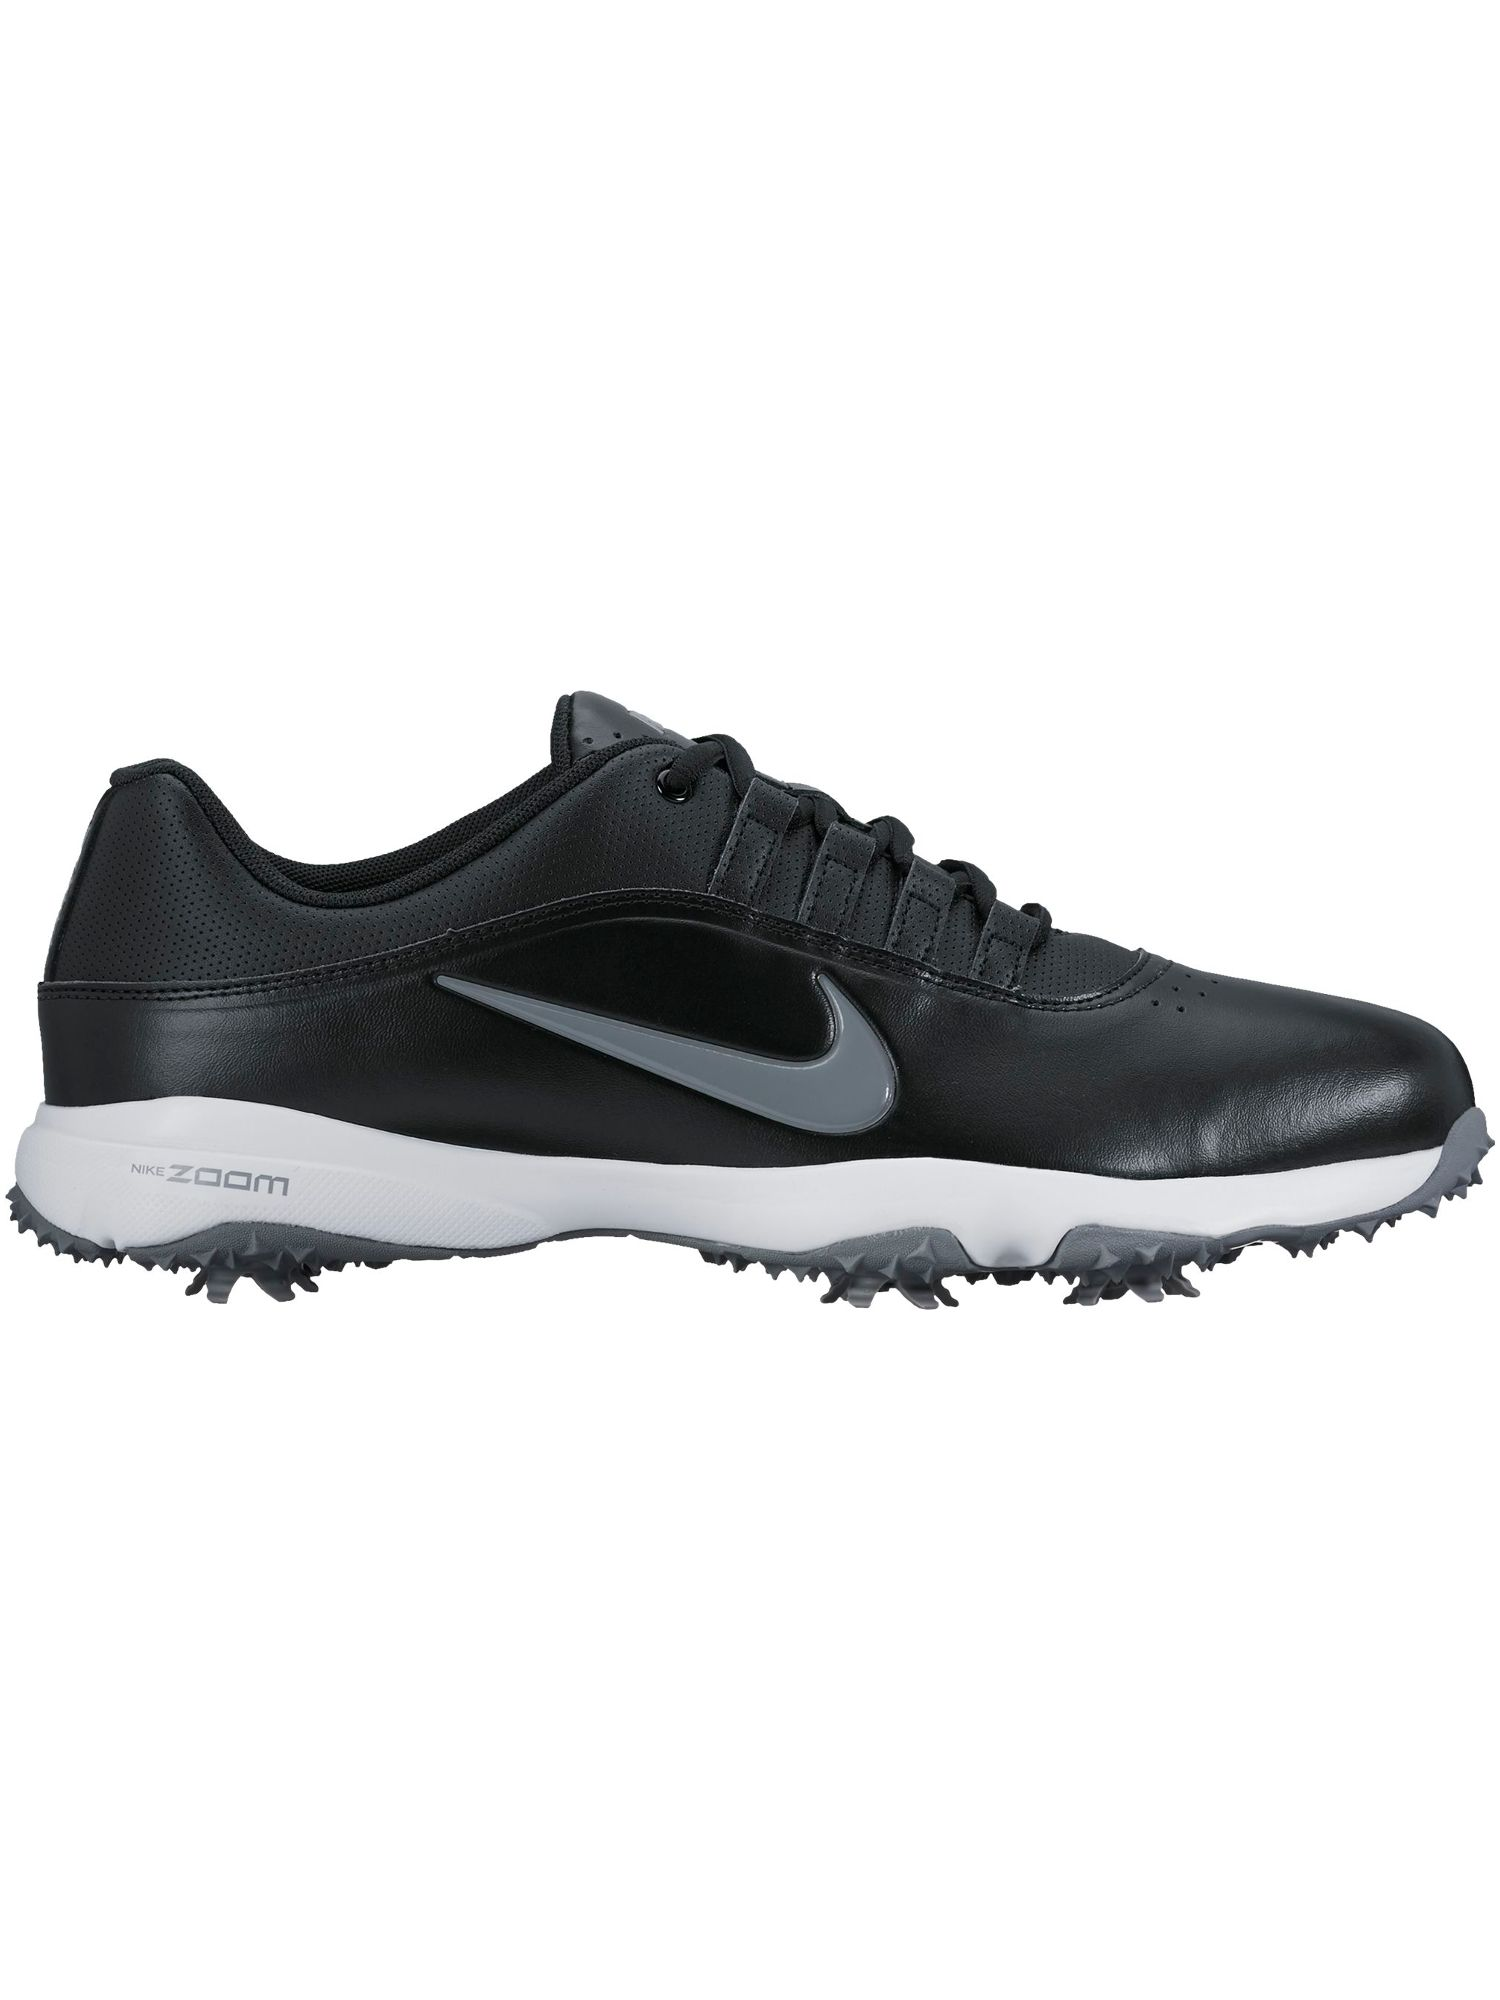 Nike Air Zoom Rival 5 Golf Shoes Black & Grey